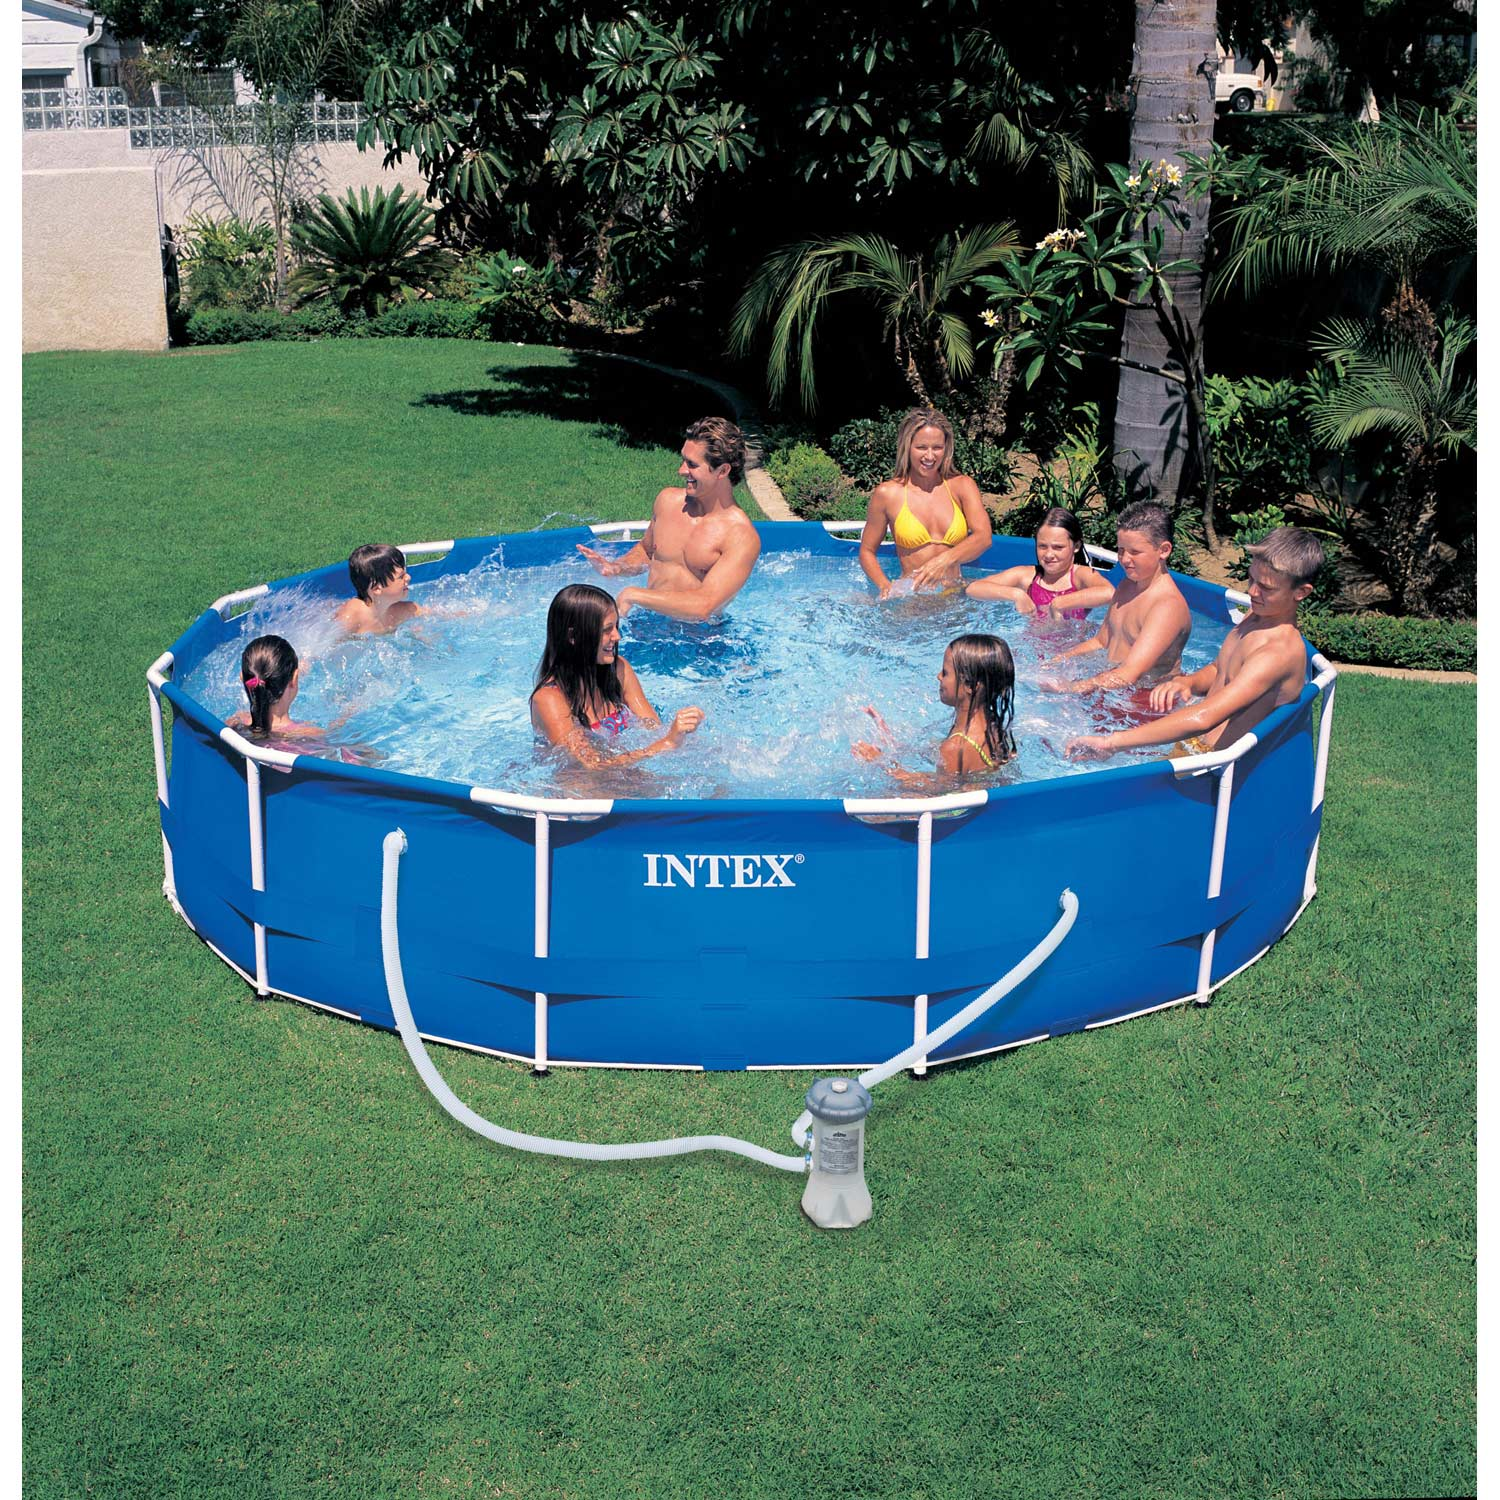 Piscine hors sol autoportante tubulaire metal frame intex for Securiser piscine hors sol